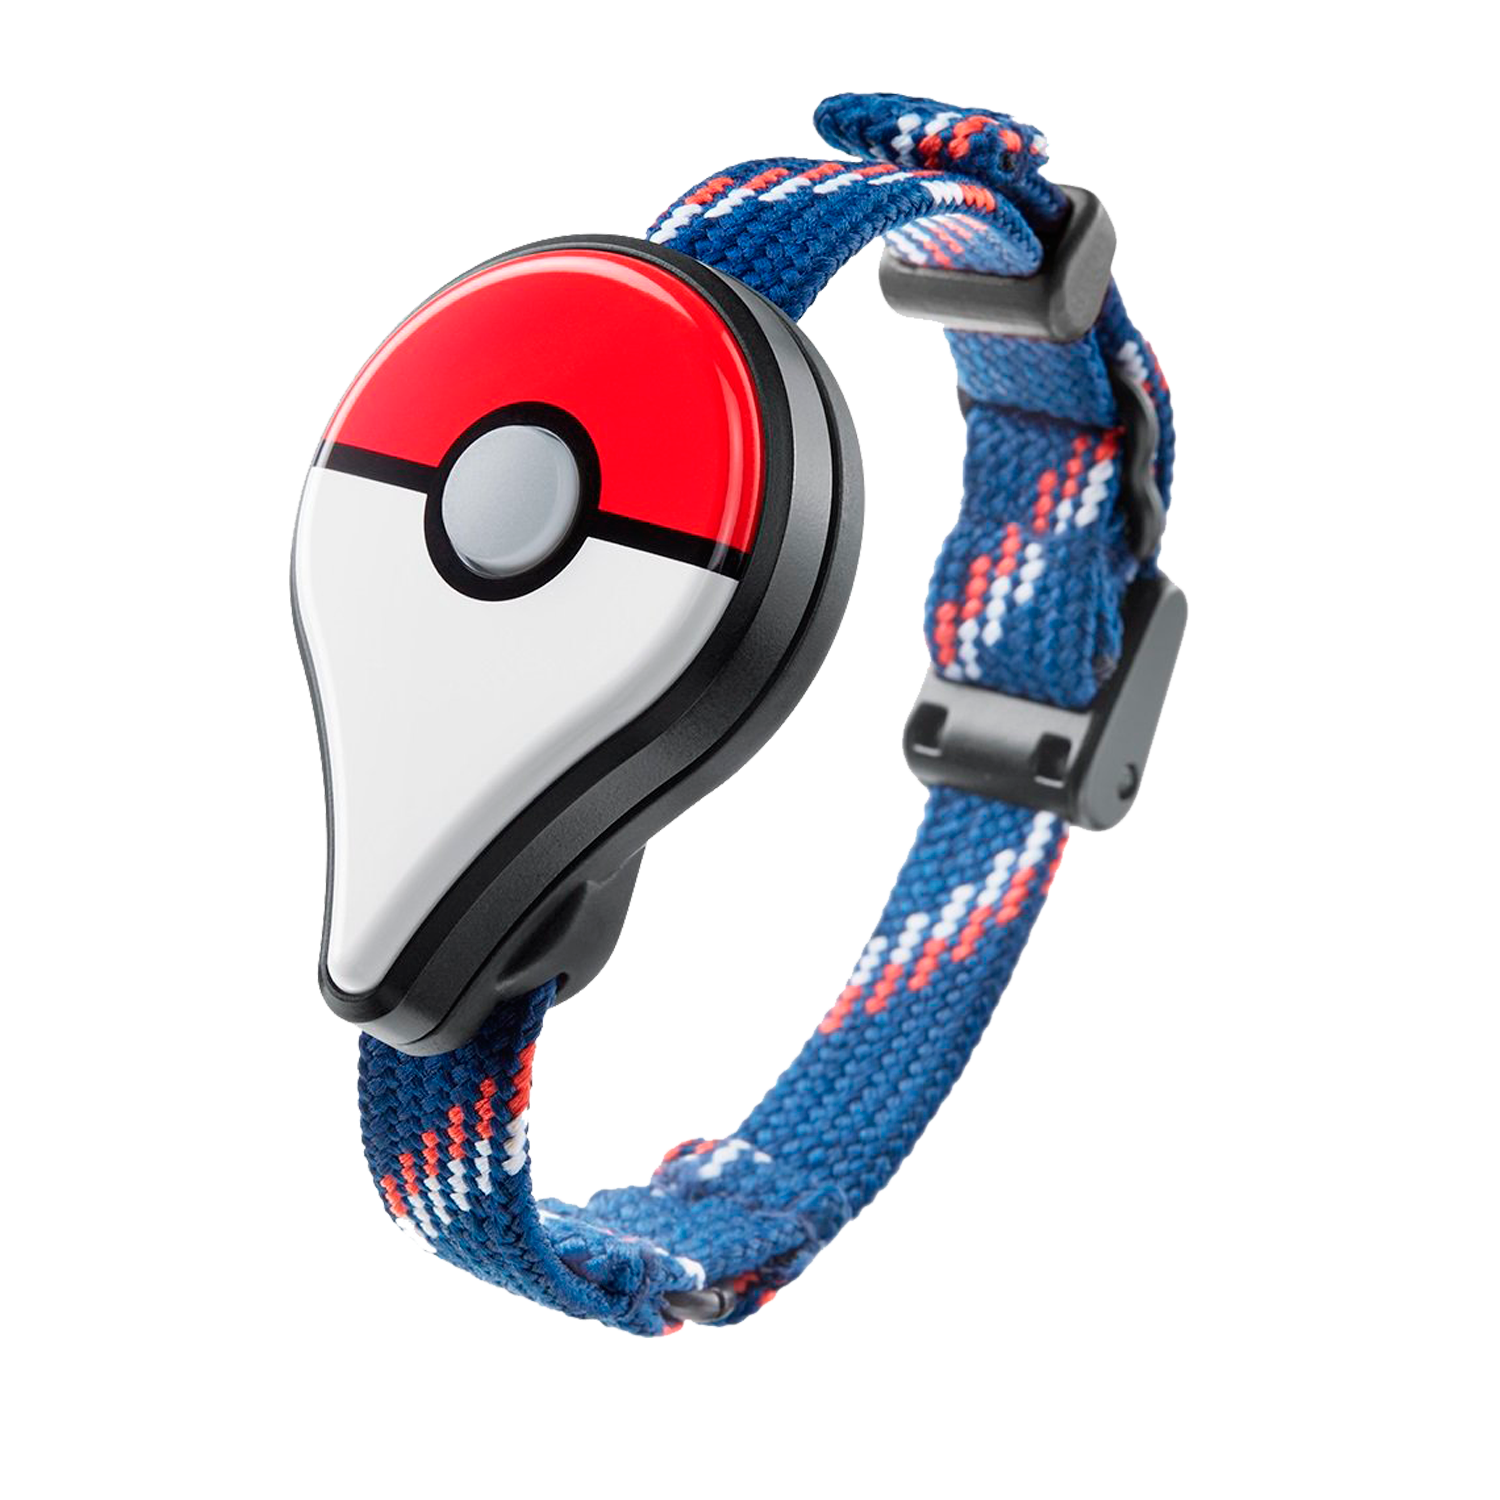 Pokémon Go Plus Skins